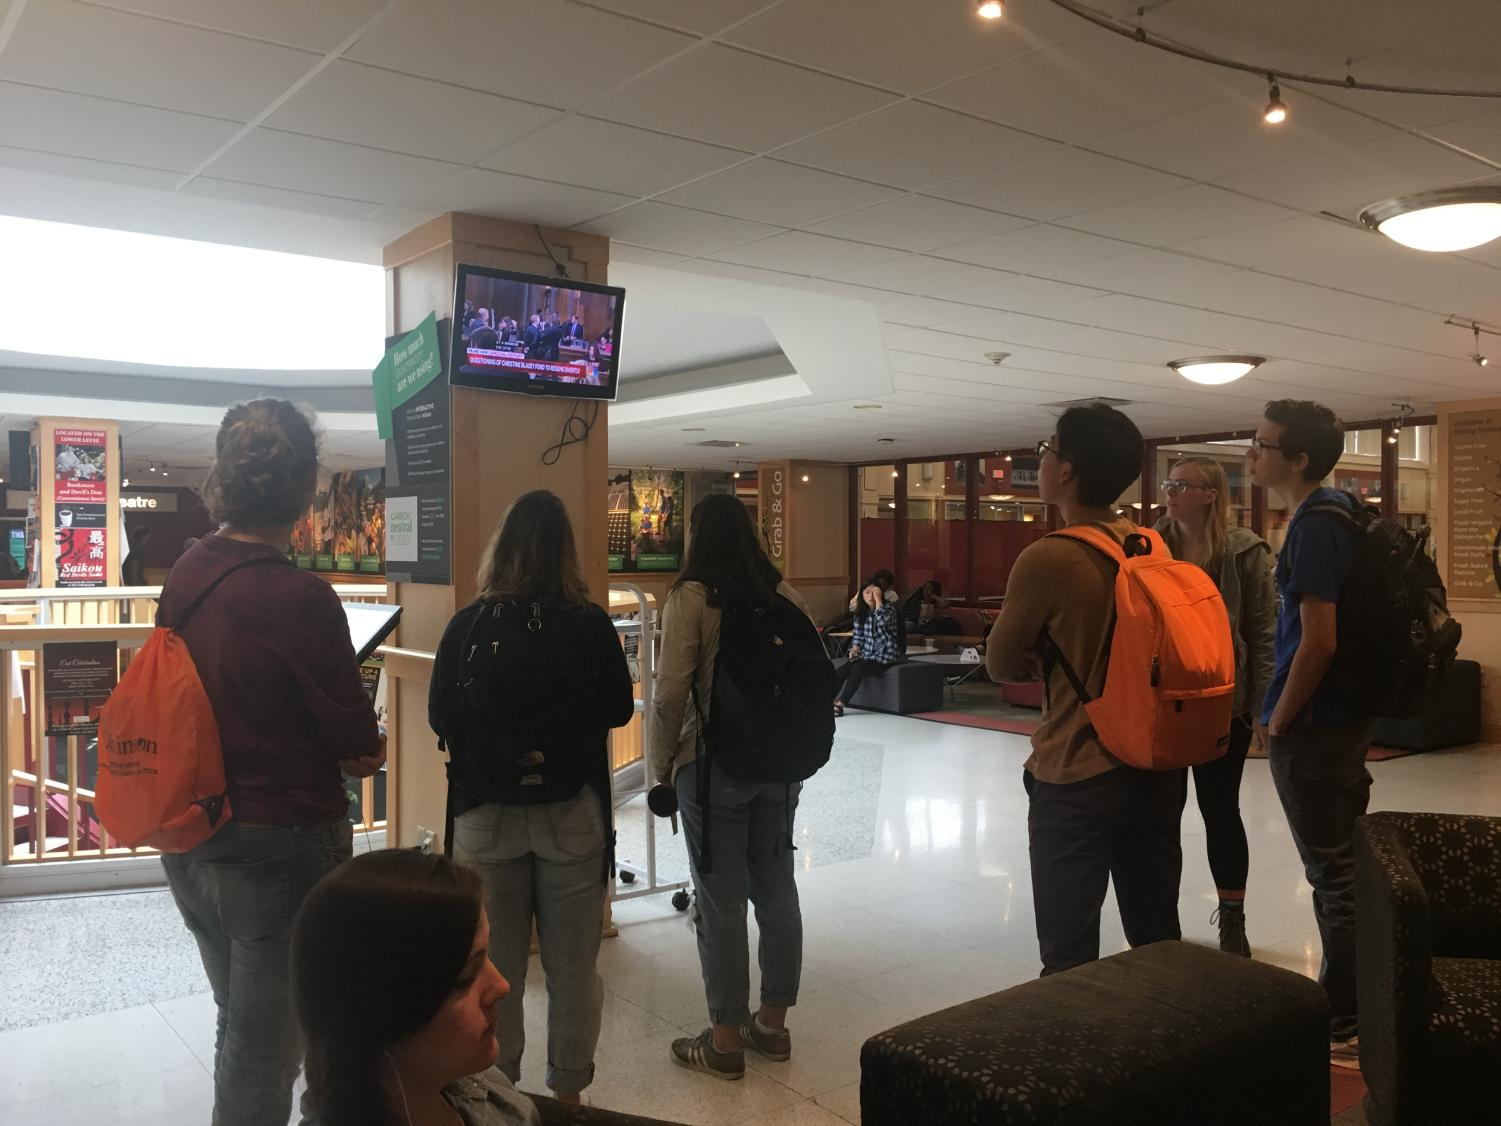 Students in the HUB gather on Thursday, Sept. 27 to watch the testimonies and hearings of Dr. Christine Blasey Ford and Judge Brett Kavanaugh.